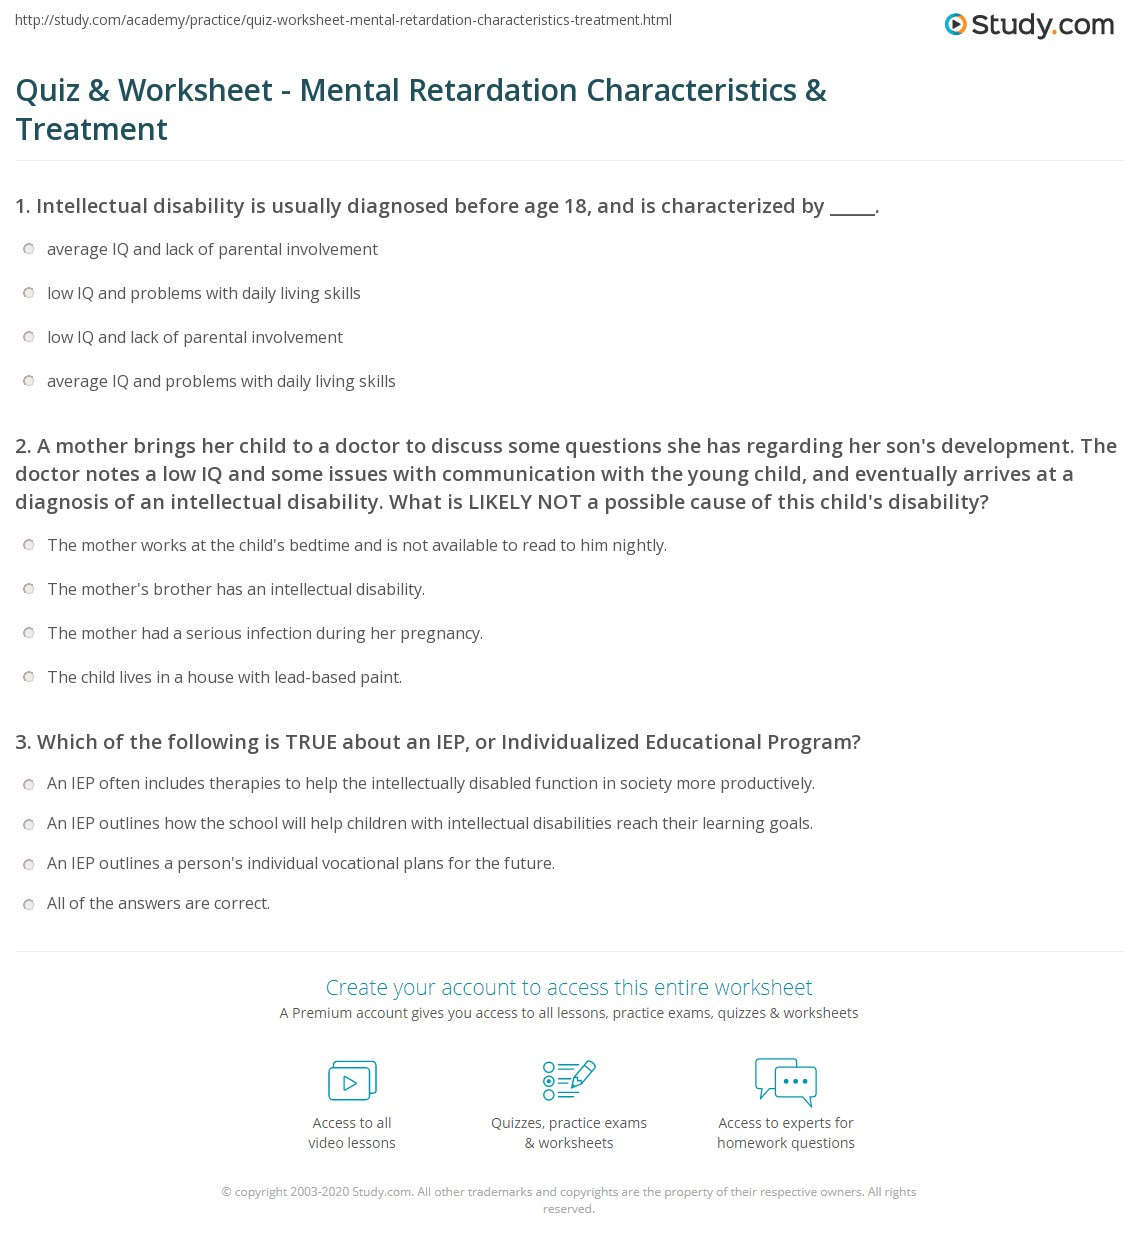 Daily Living Skills Worksheet Quiz & Worksheet Mental Retardation Characteristics